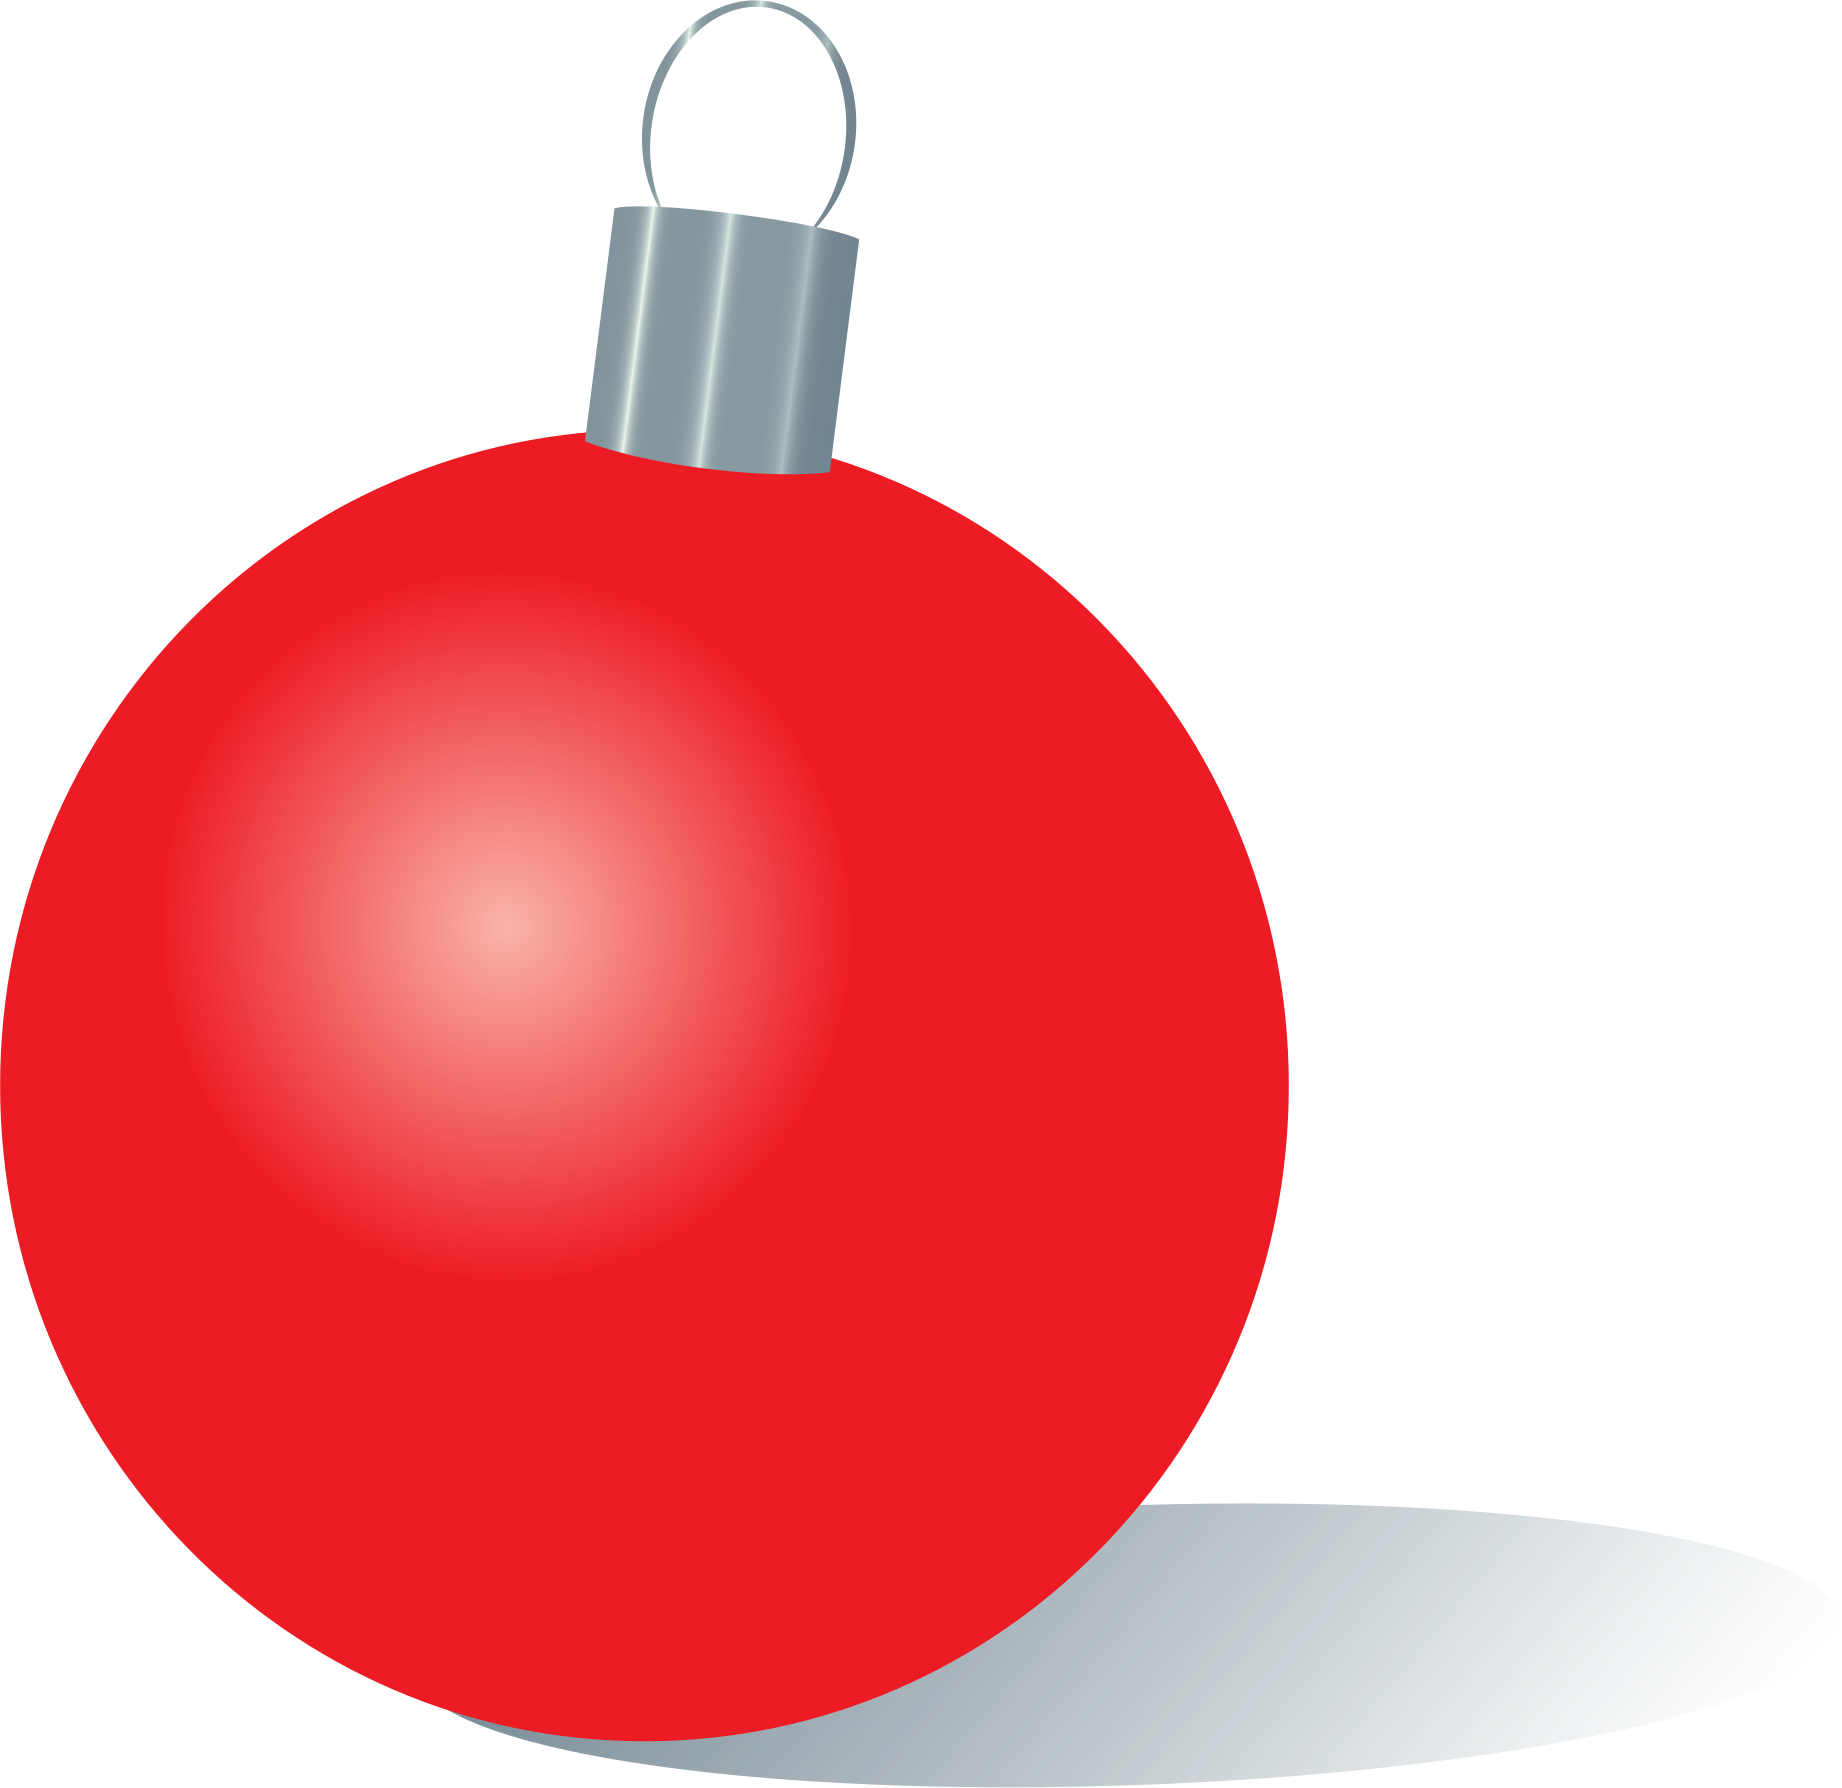 Clipart christmas ornament picture library download Clipart - Red Christmas Ornament picture library download